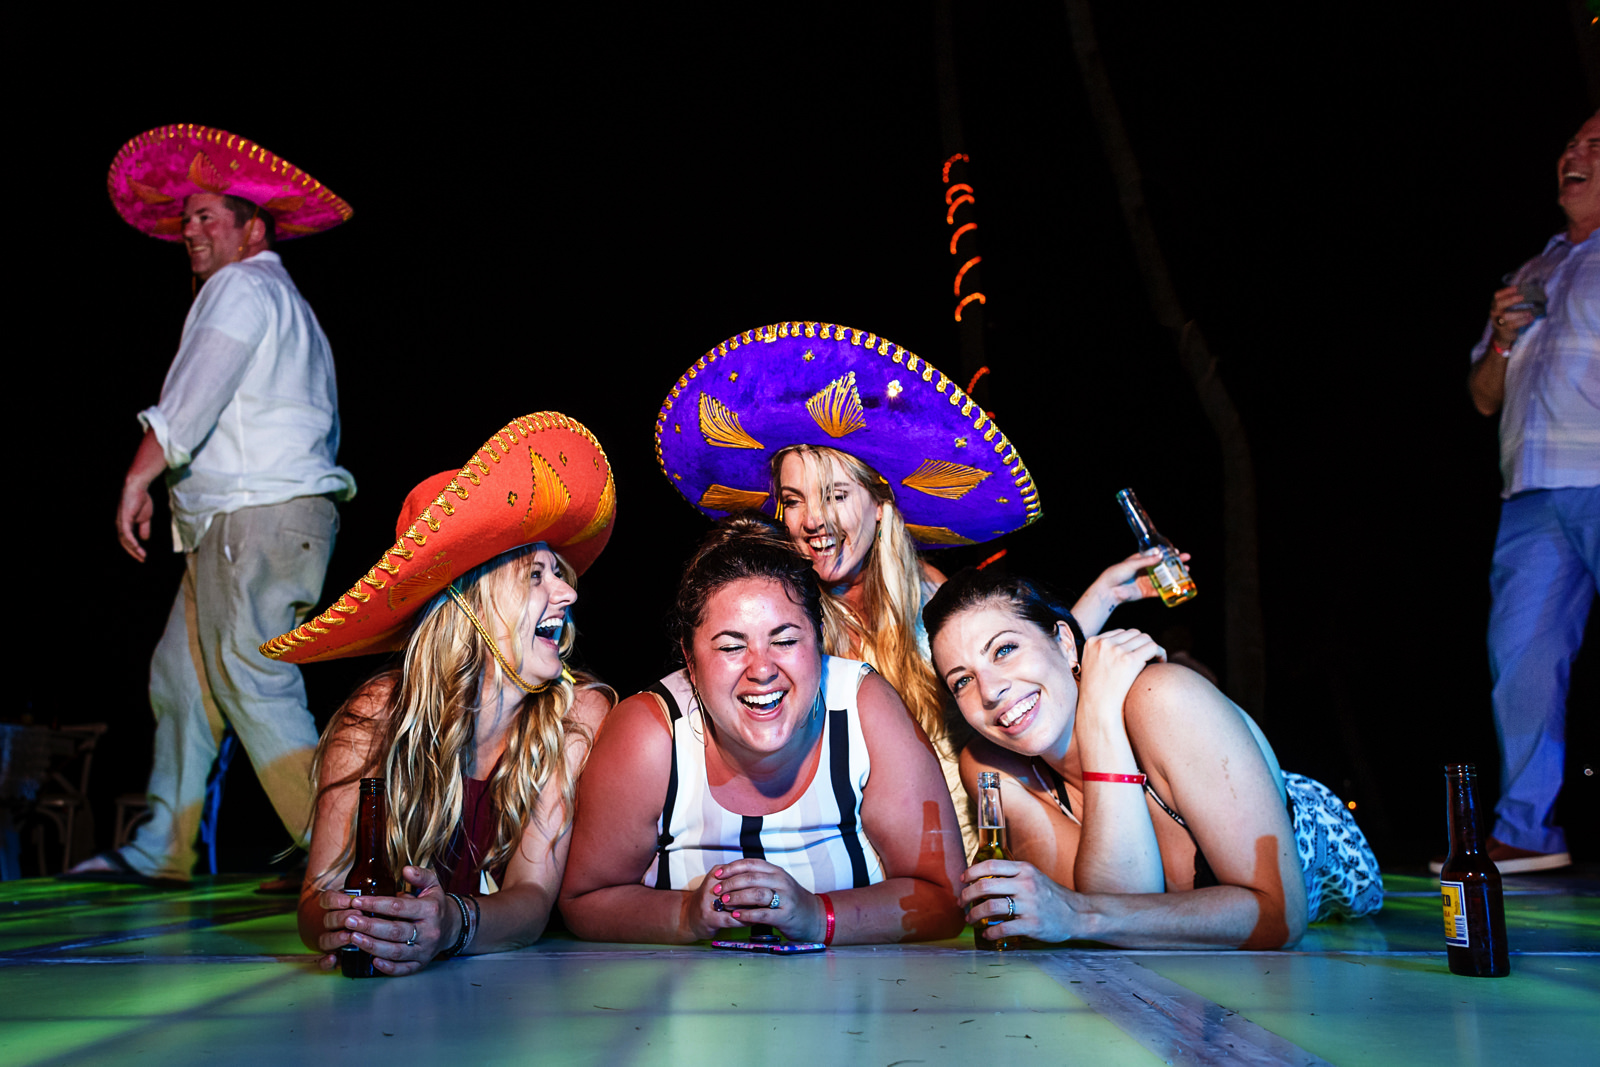 Bride and friends laying over the illuminated dance floor wearing mexican sombreros